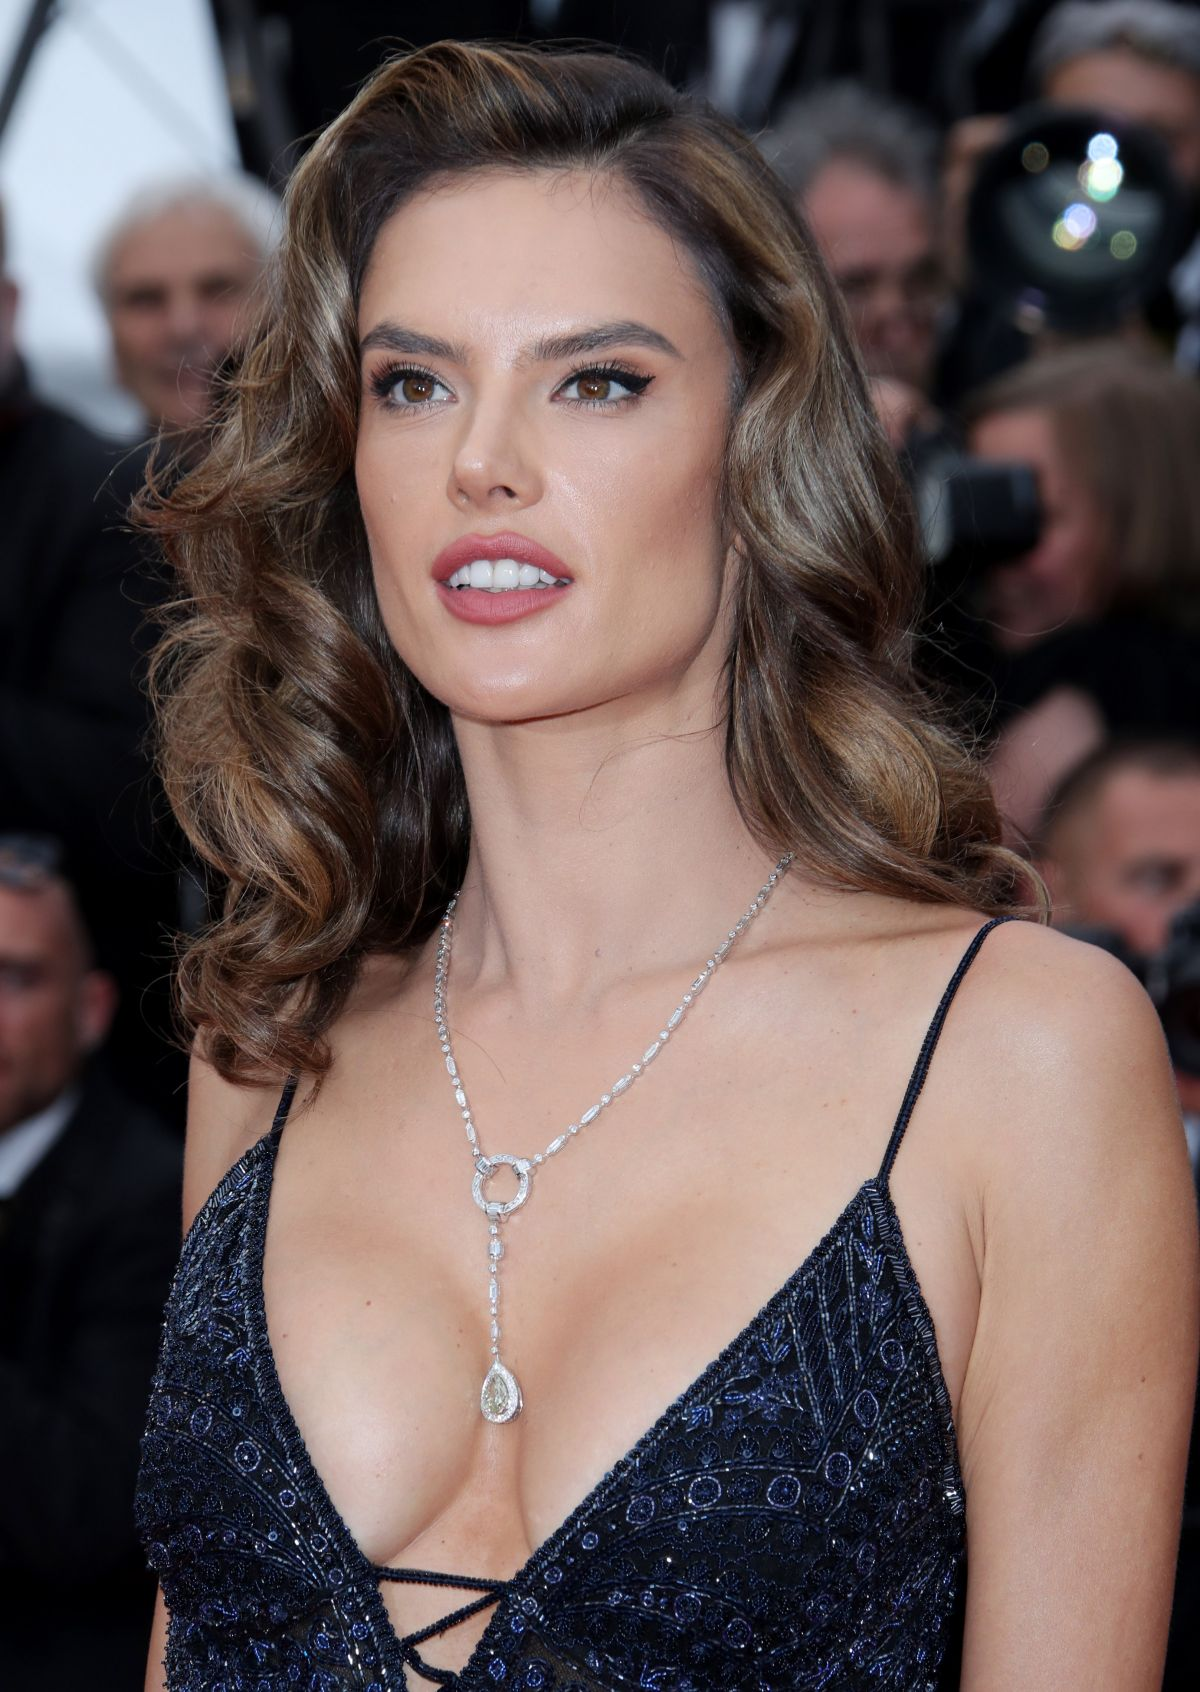 Alessandra Ambrosio nudes (83 pictures), Is a cute Ass, Twitter, in bikini 2019